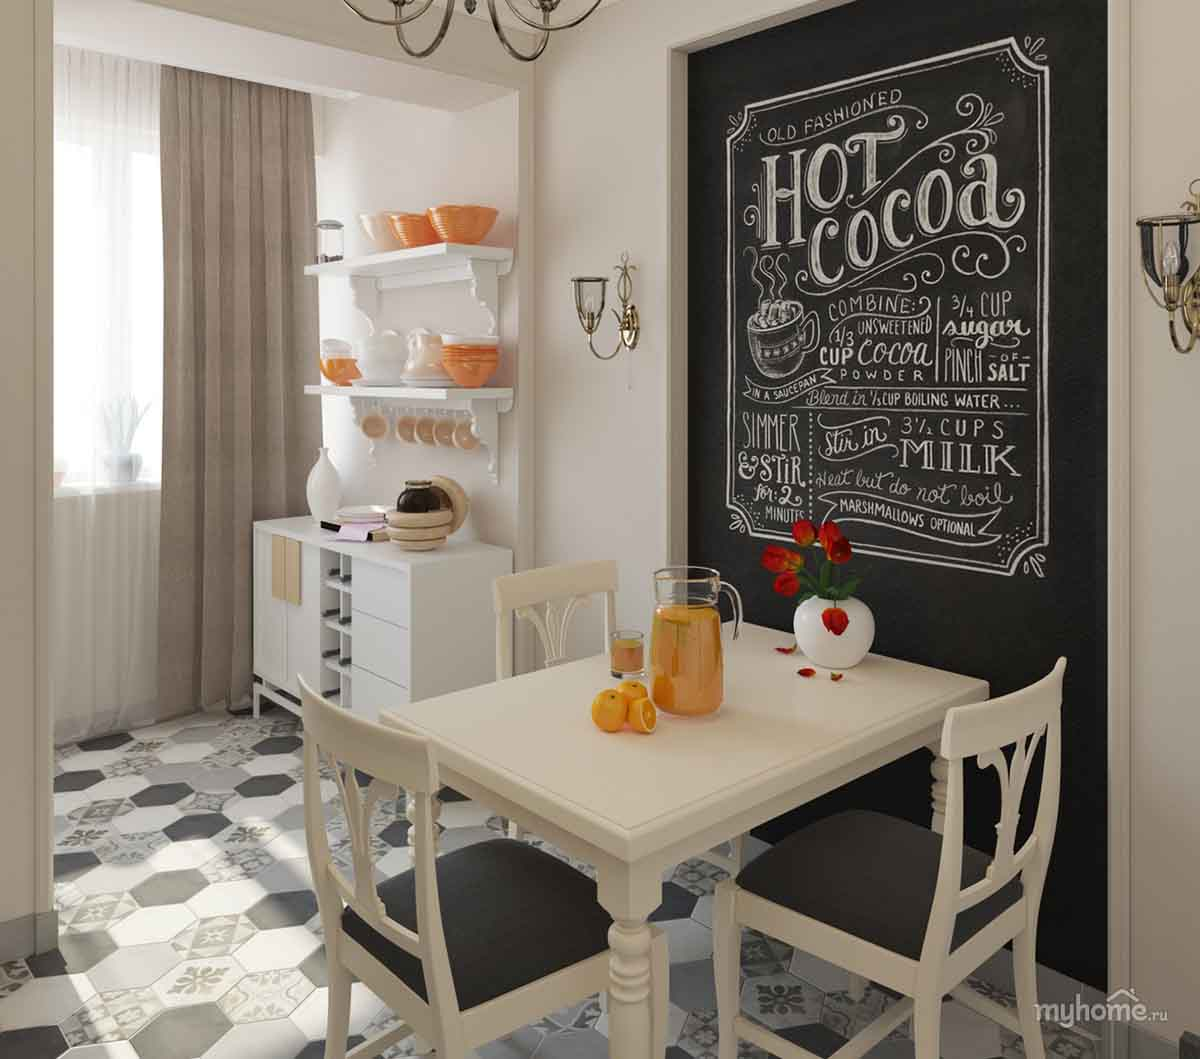 Chalkboard Backed Cottage Dinette Set